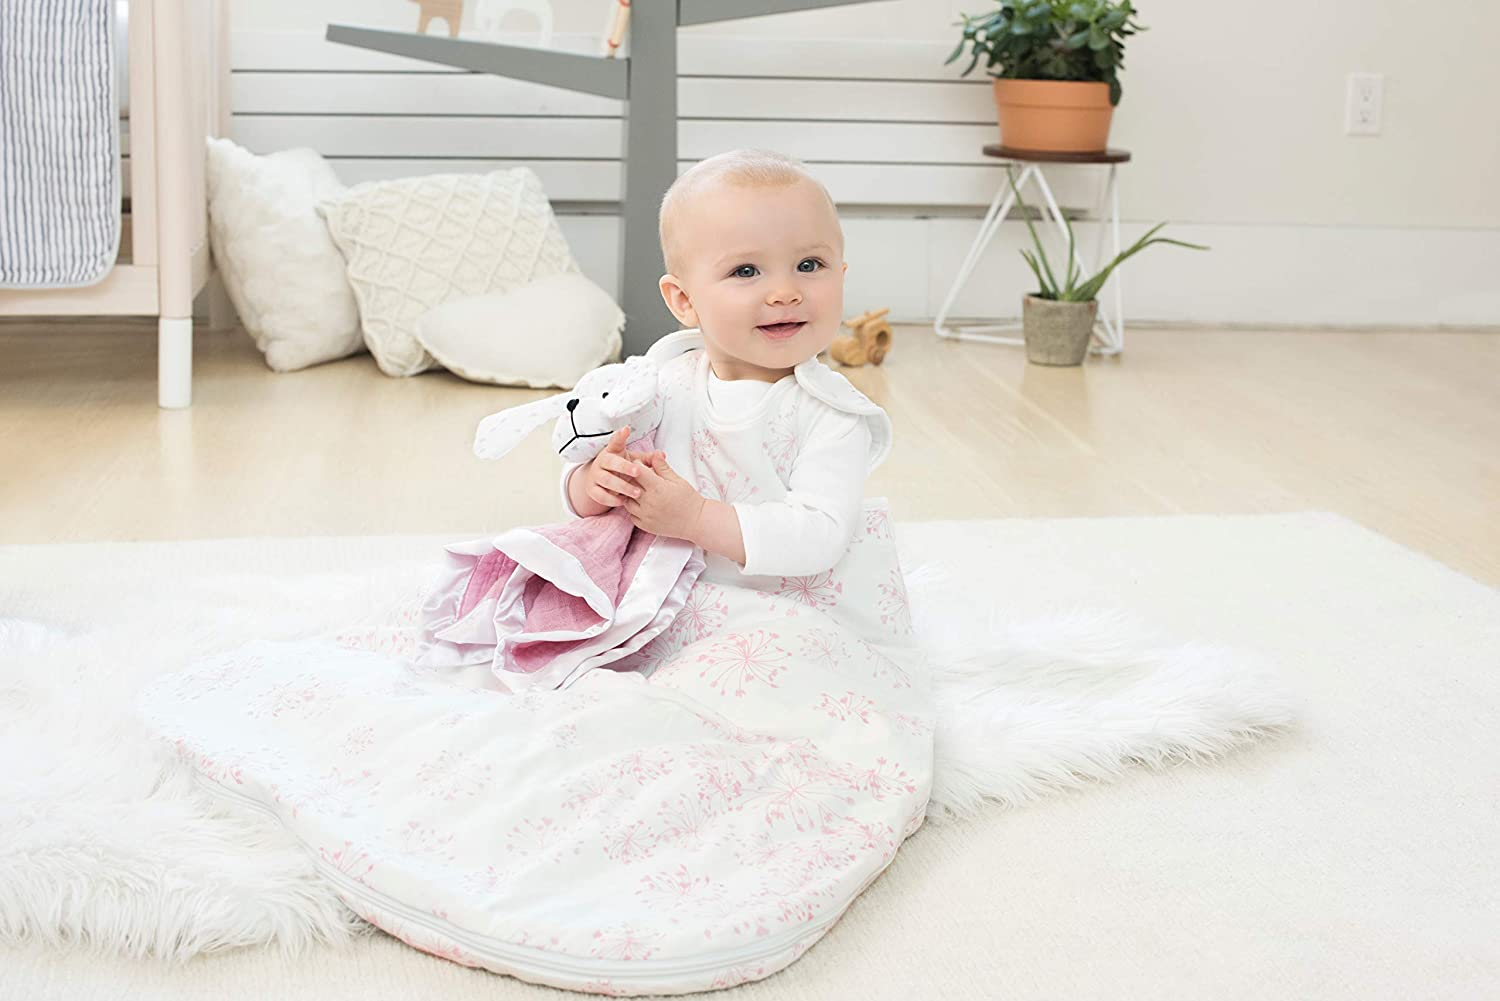 Amazon.com: aden + anais Winter Sleeping Bag - Lovely Reverie Dandelion - 18-36m: Baby